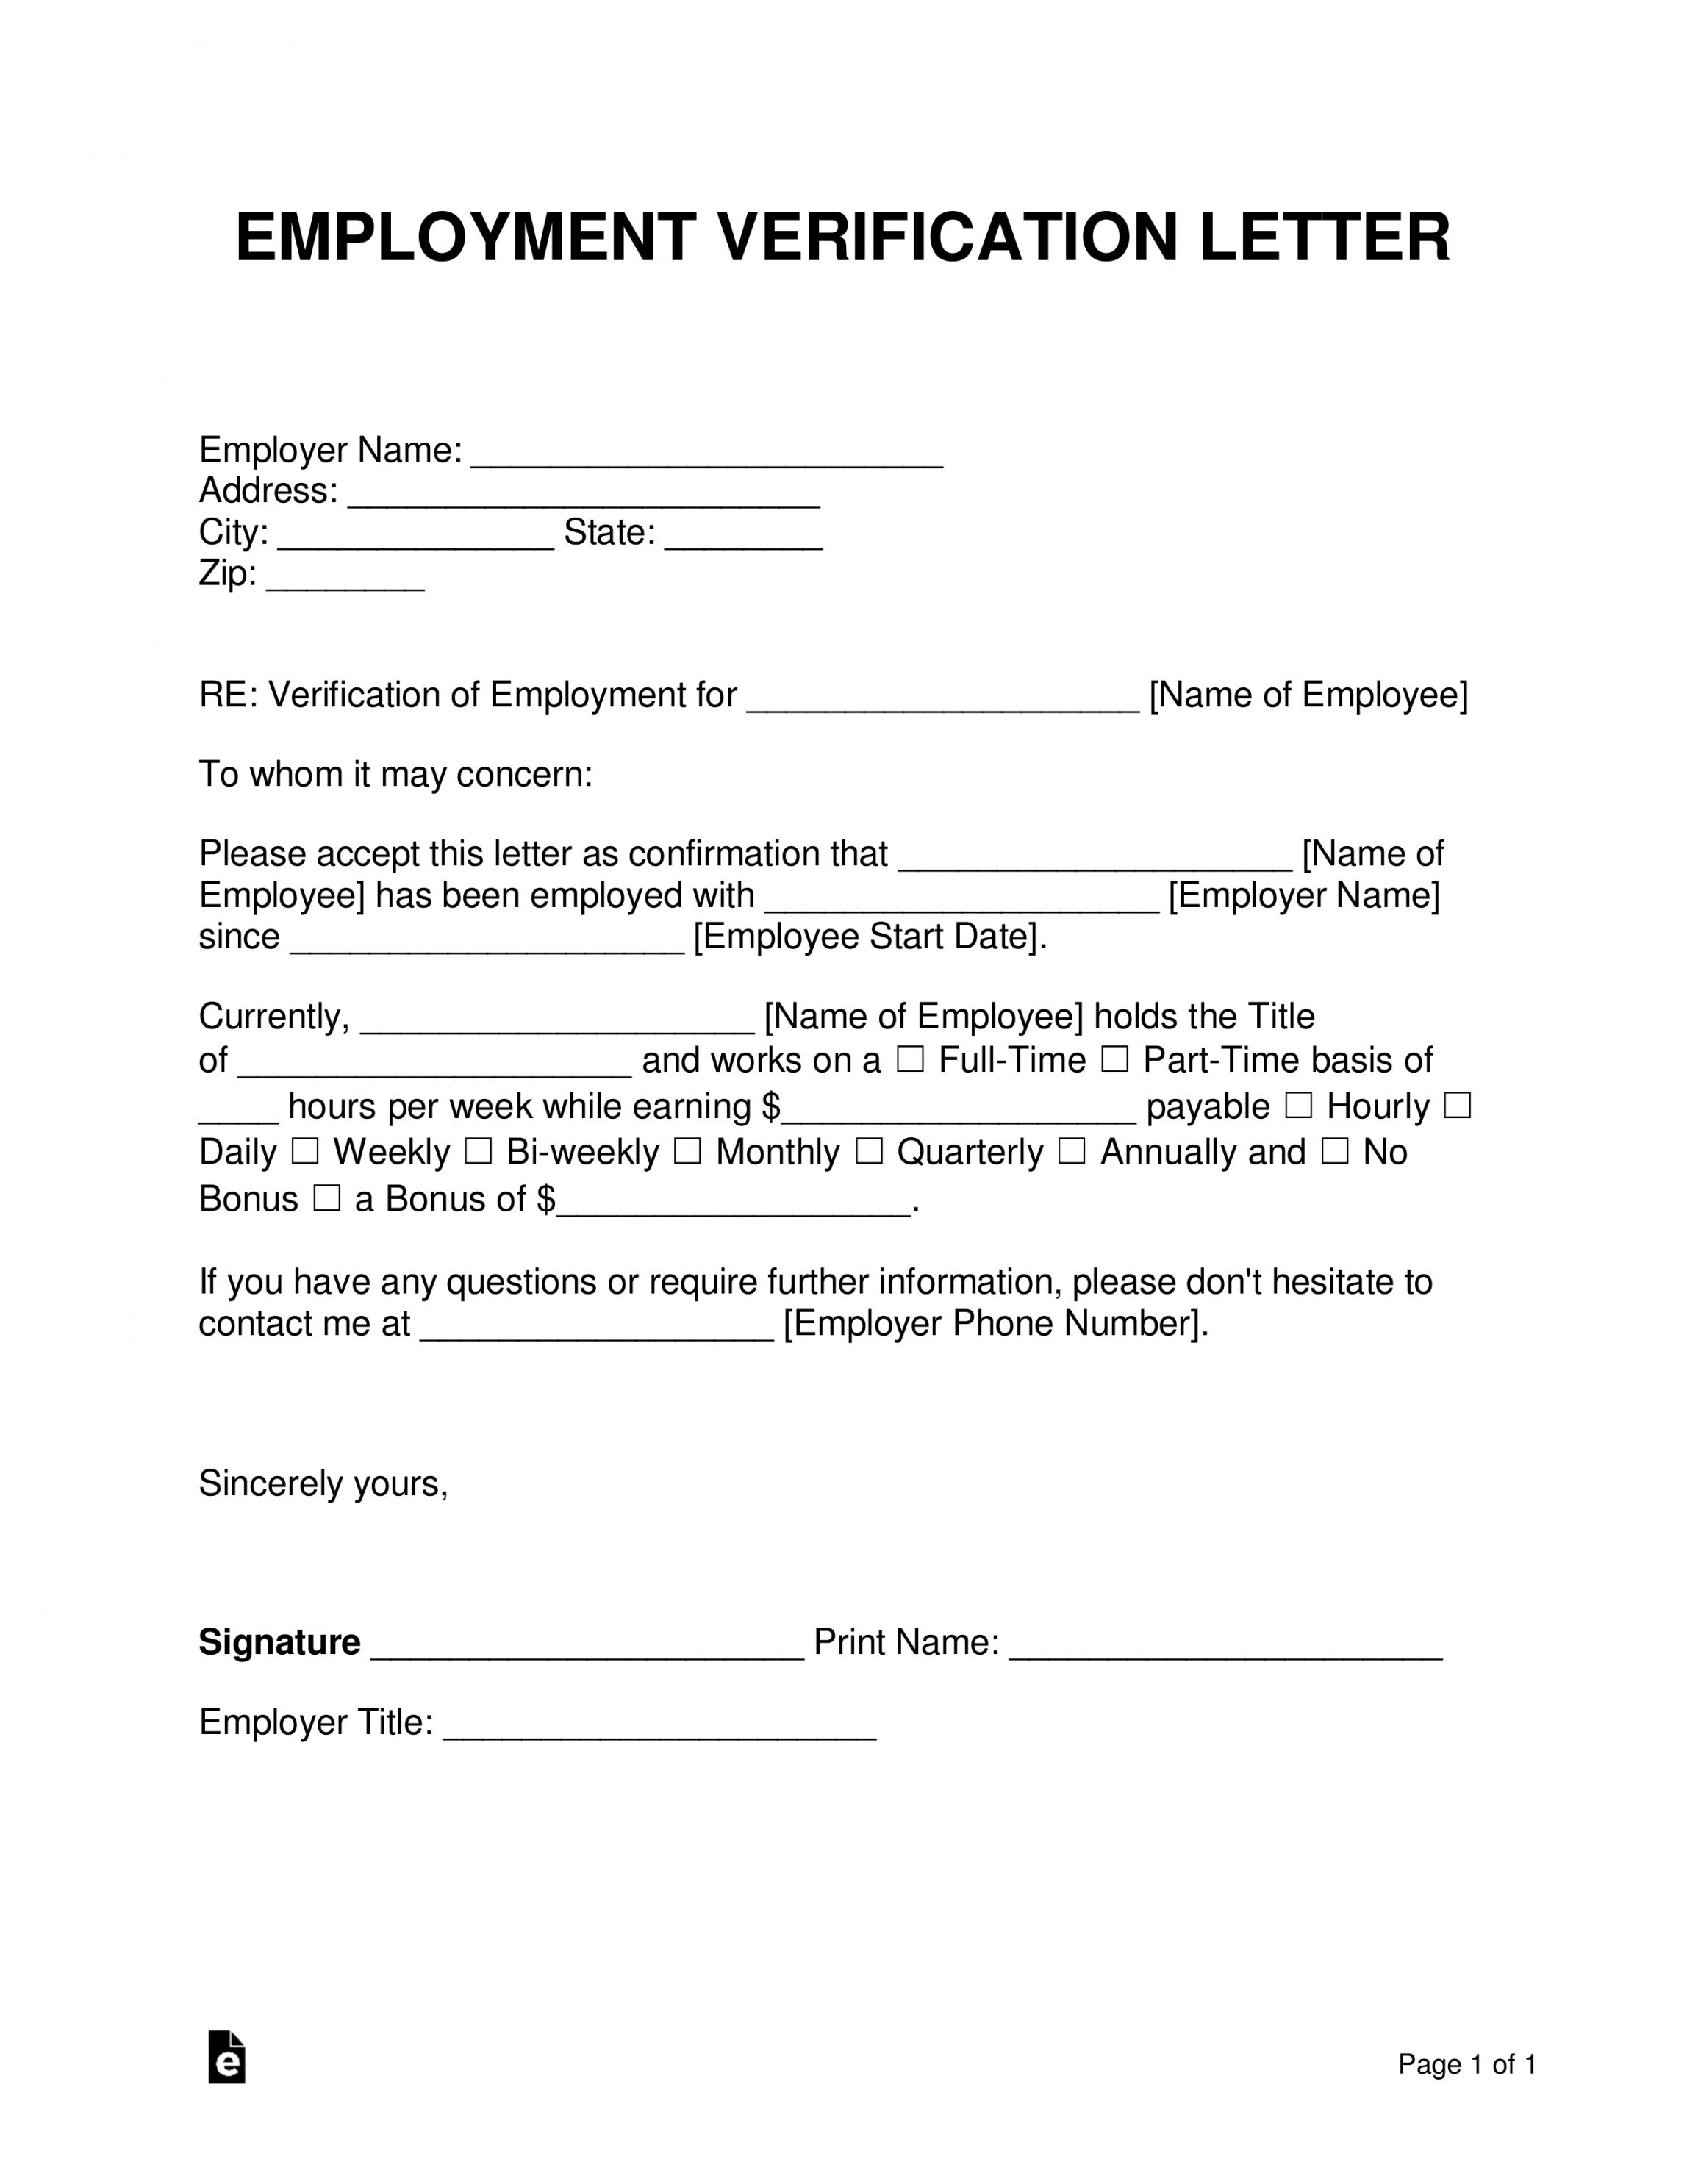 Costum Income Verification Letter For Self Employed Sample In 2021 Letter Of Employment Employment Letter Sample Employment Form Free employee verification form template